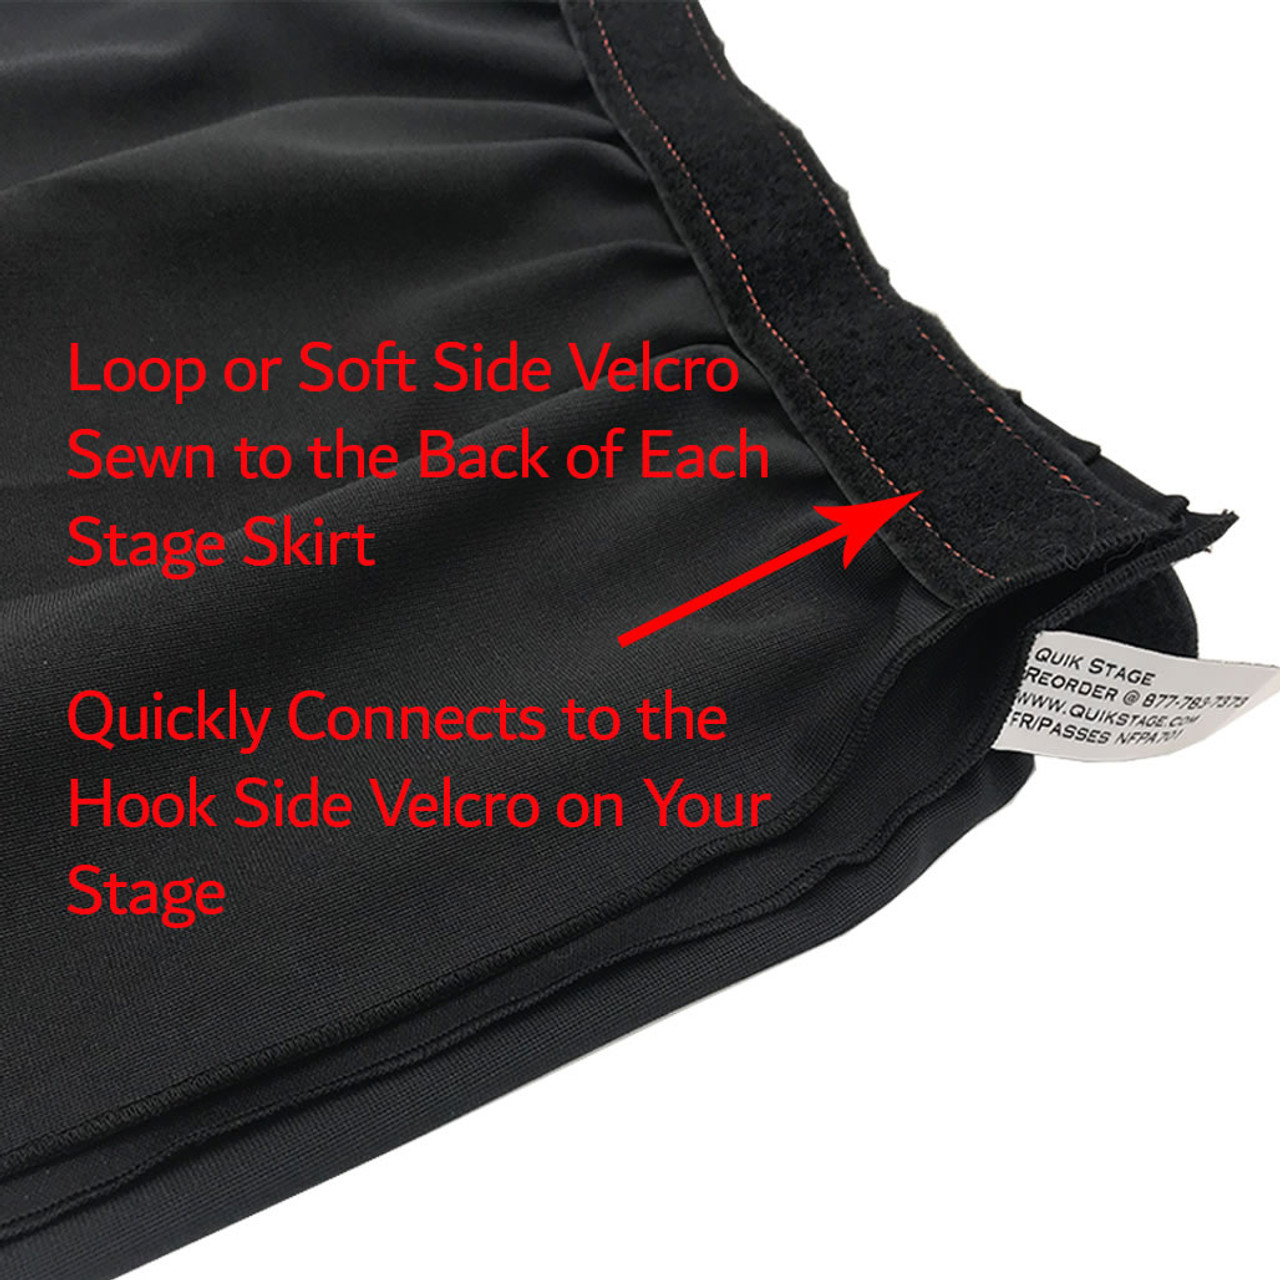 12 Inches High Best Value Black Expo Pleat Polyester Stage Skirting with Velcro. FR Rated. - Loop Velcro sewn on back.